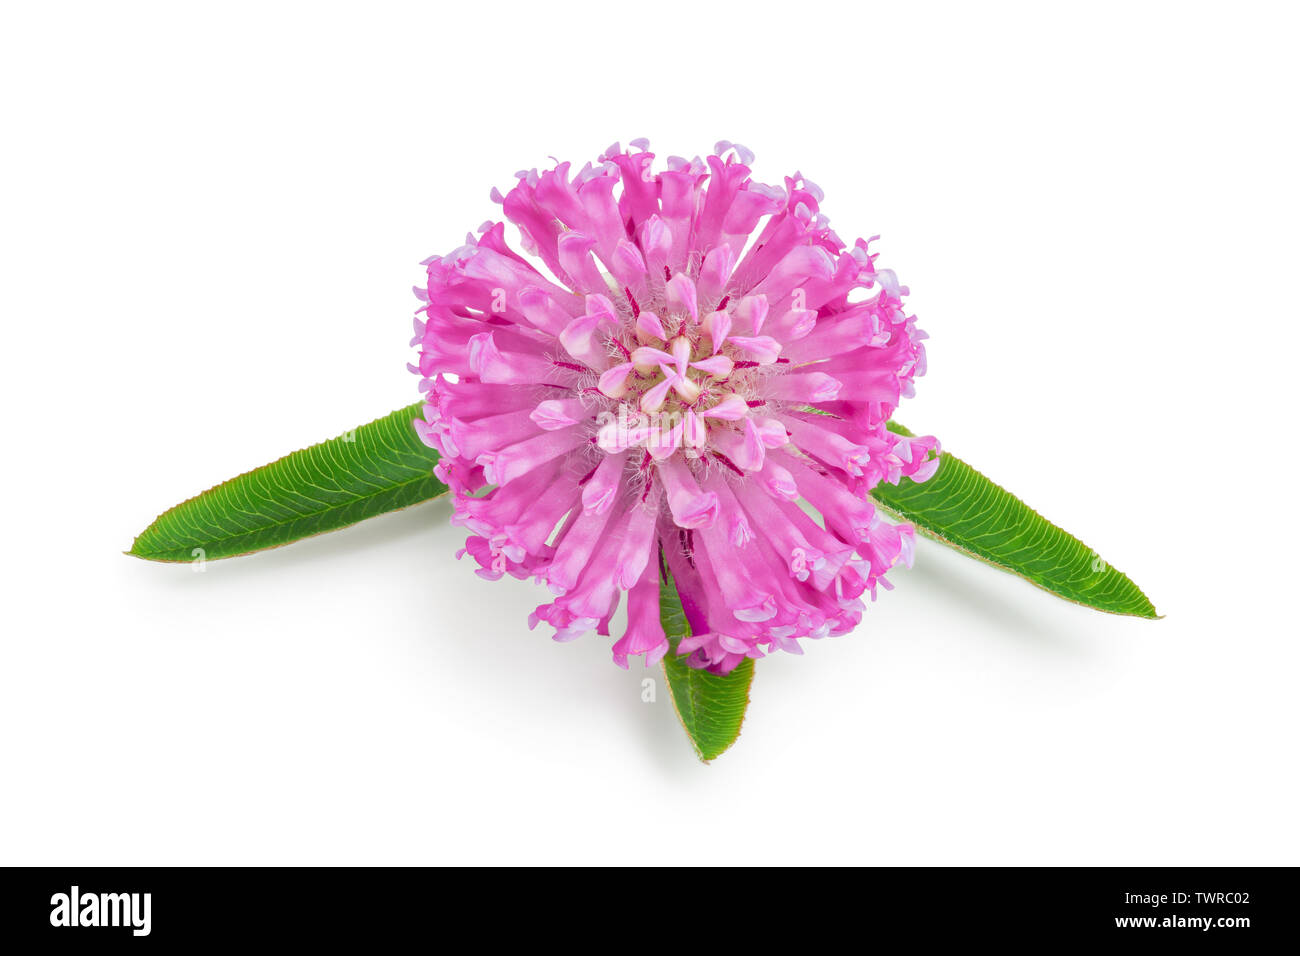 flower of a red clover clover with leaves close-up isolated on white background. - Stock Image